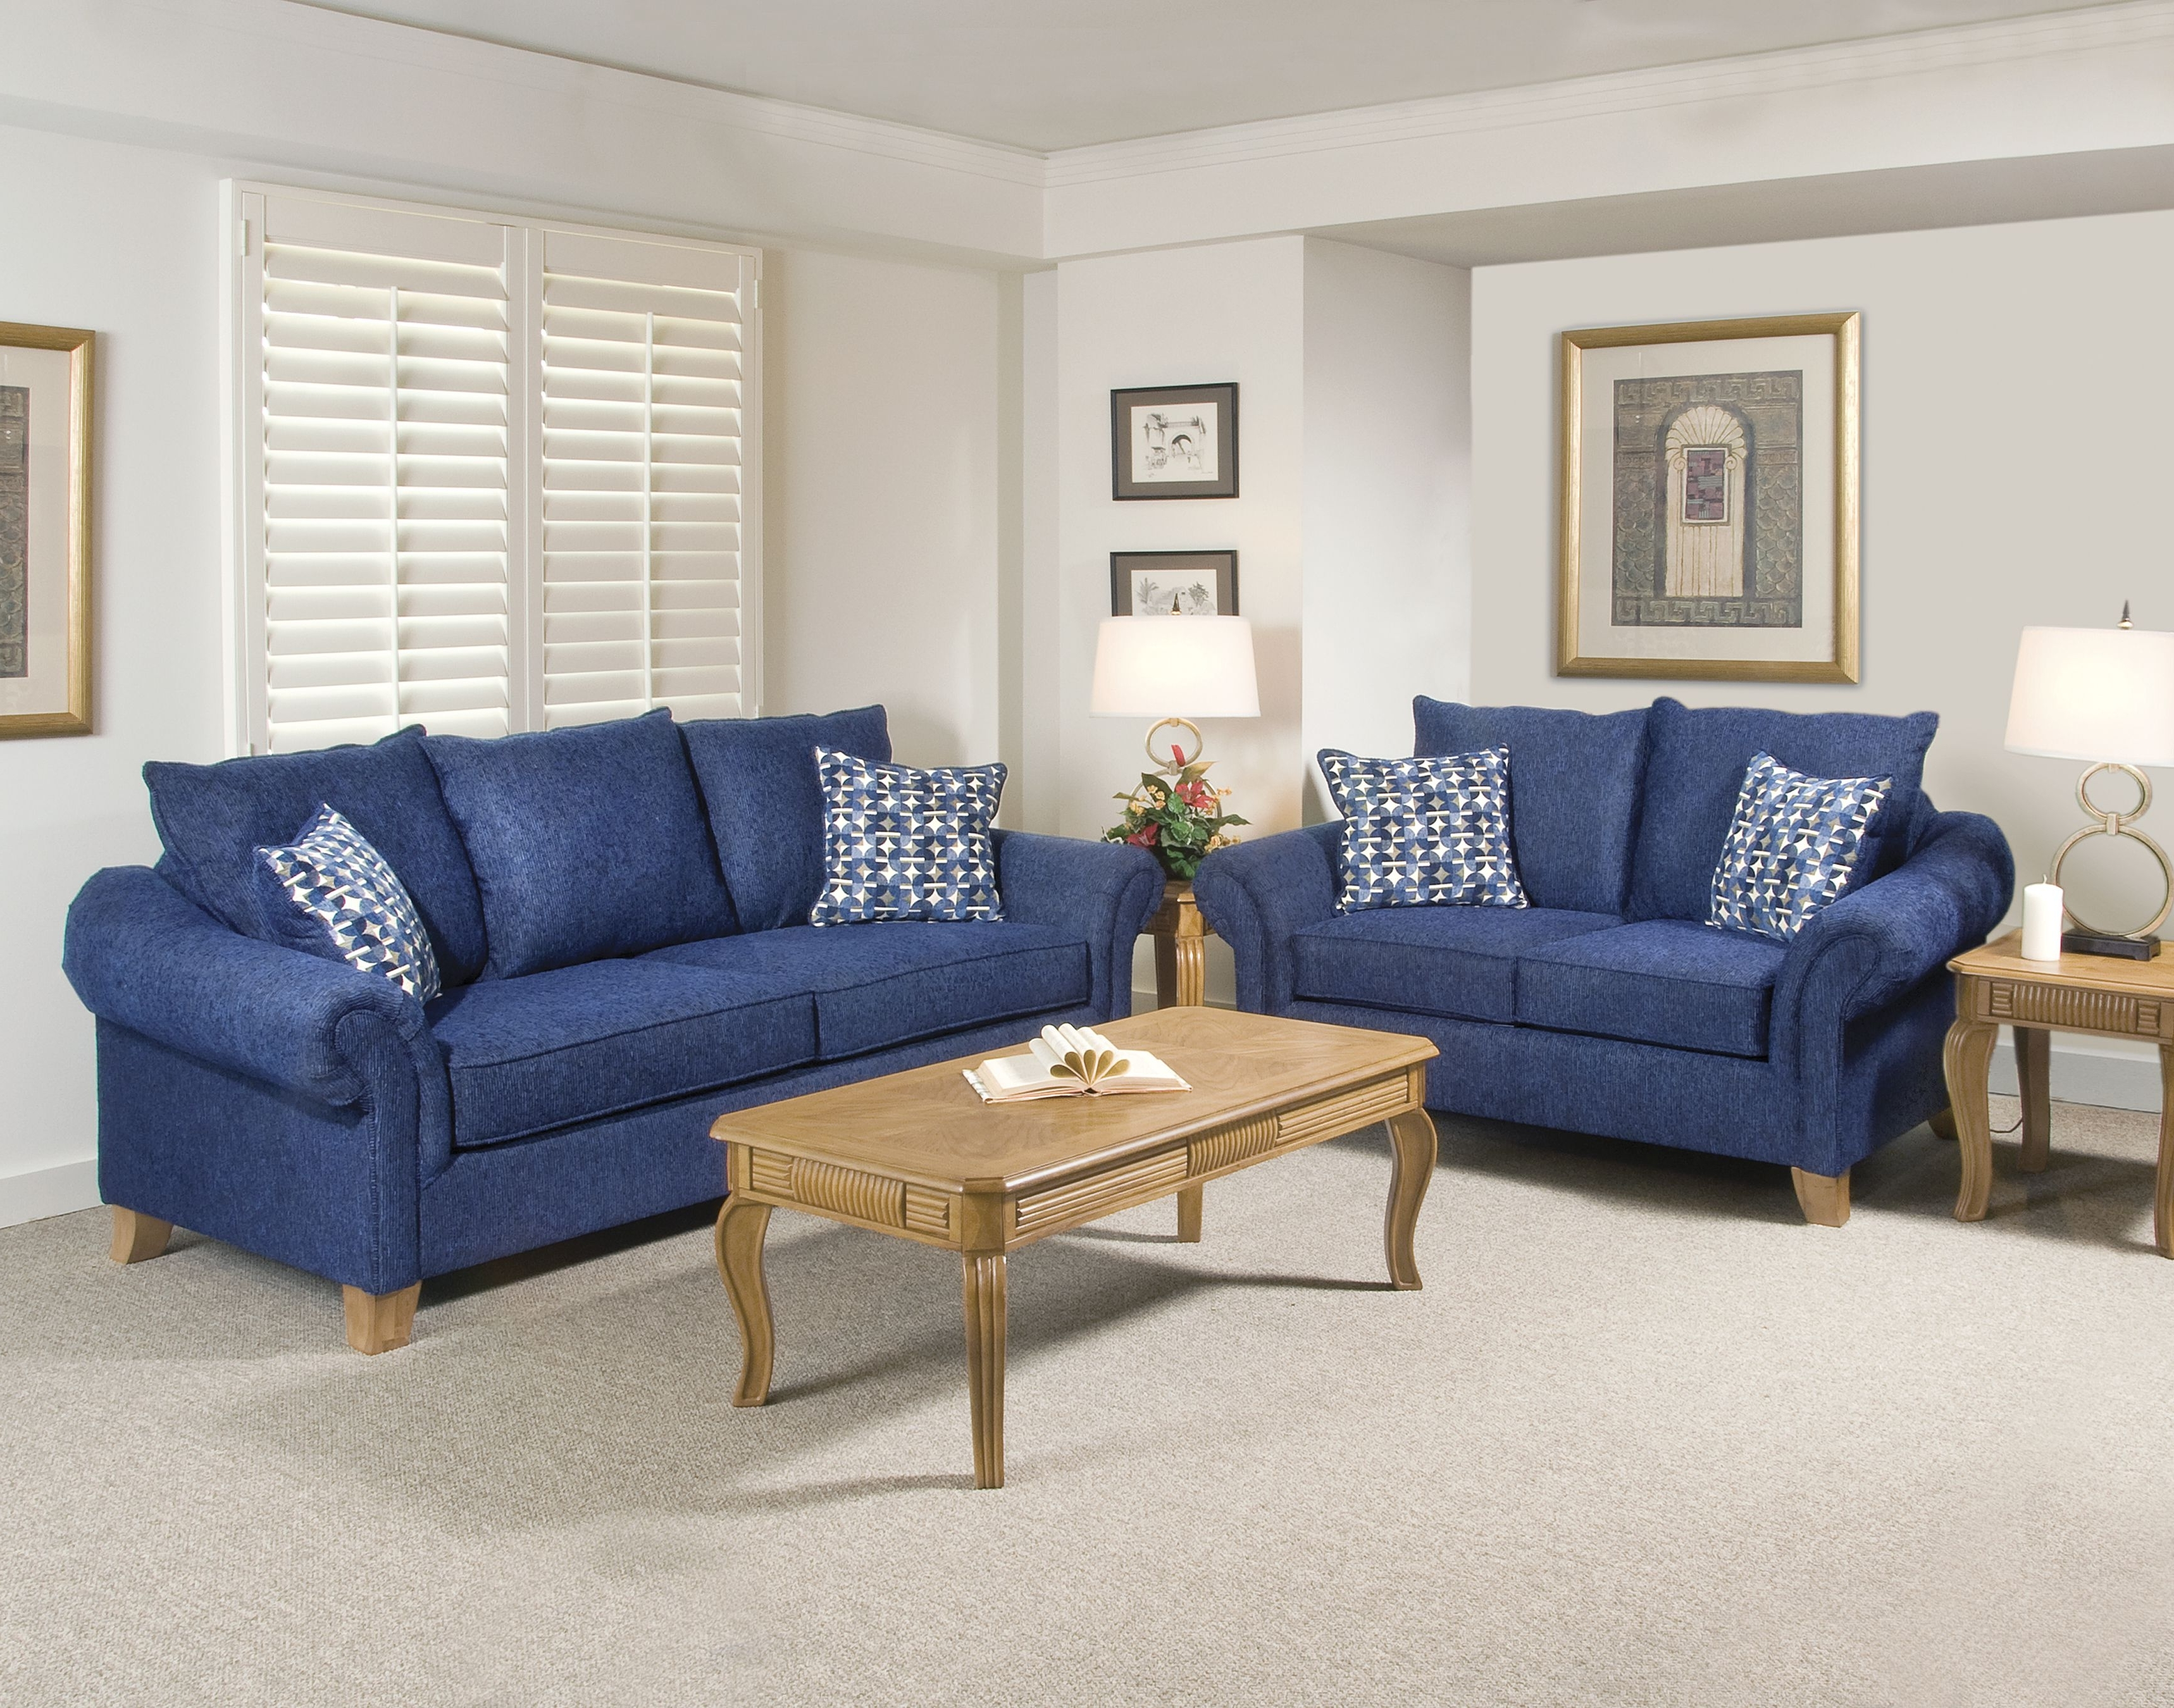 Blue Sofa Chairs Throughout Most Recent Navy Blue Sofa Set Cool – Home Ideas (View 4 of 15)